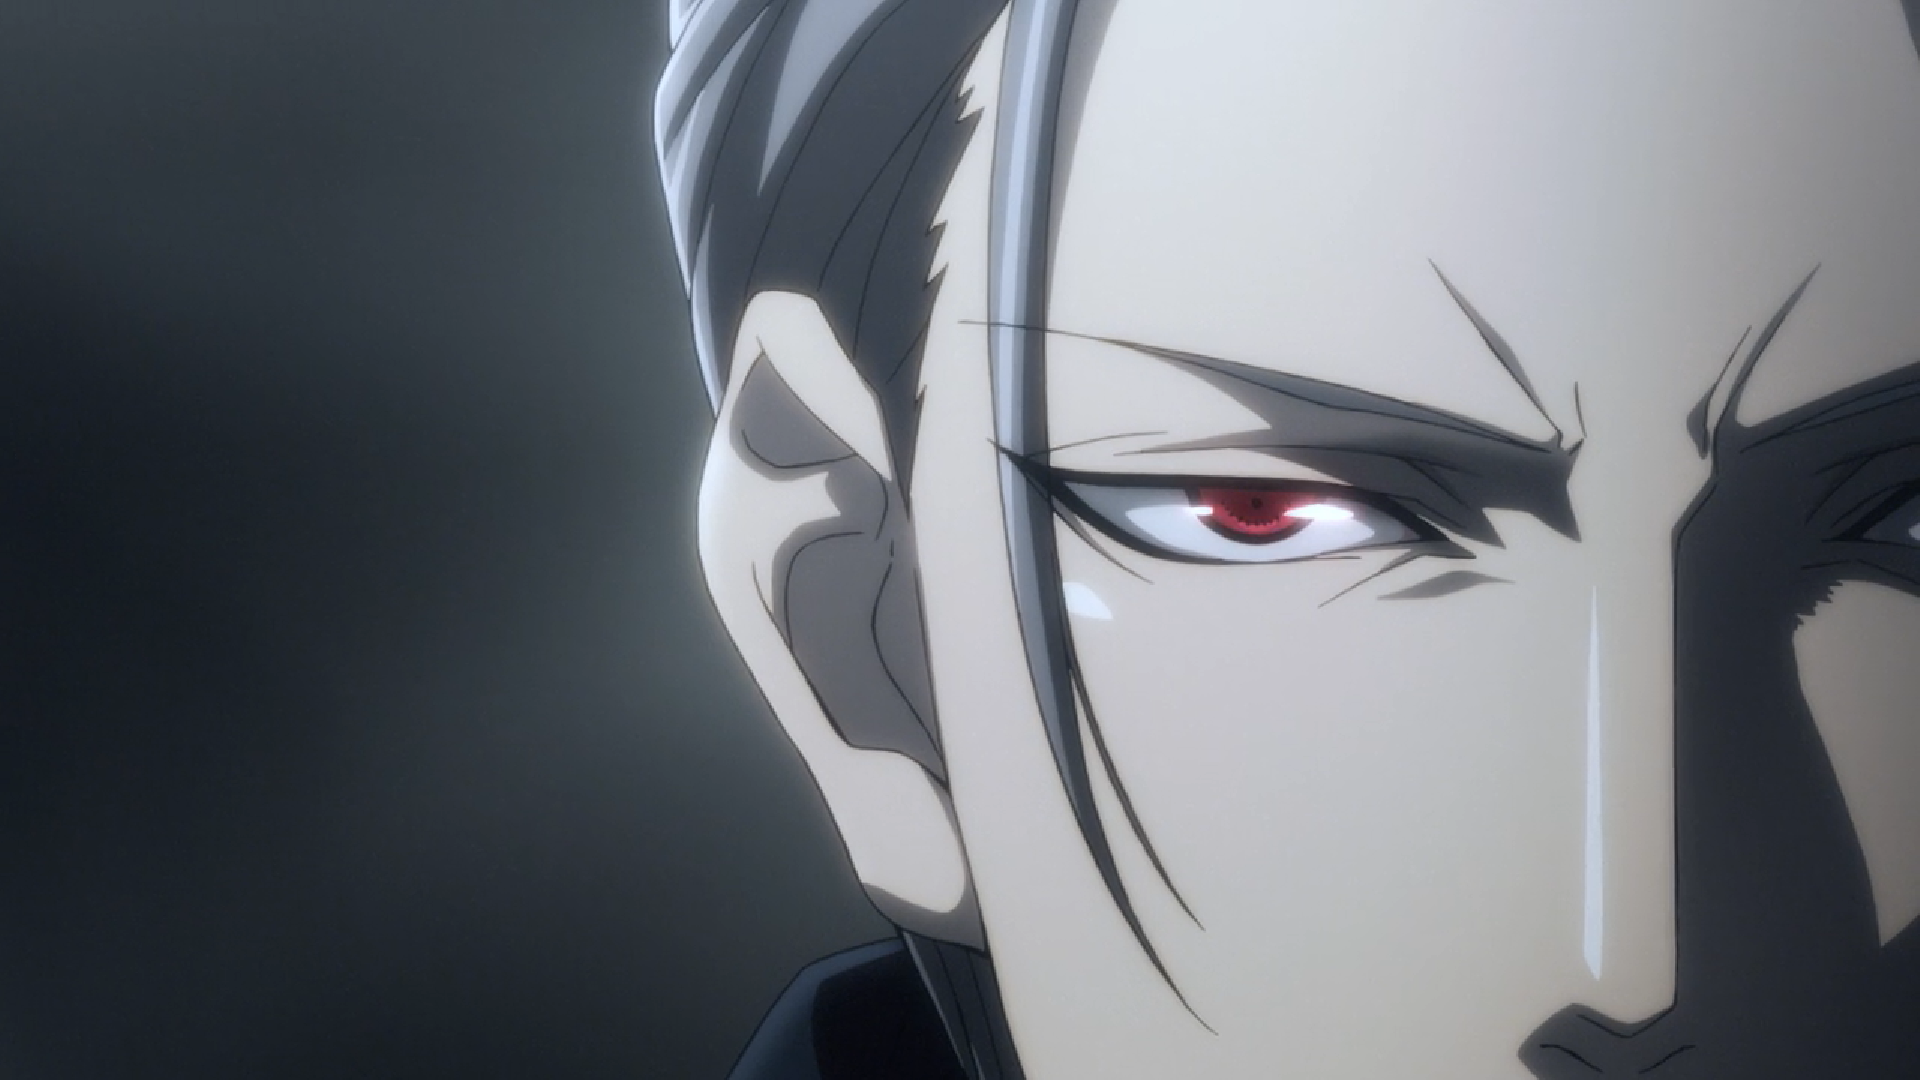 Virtual Haven - Sword Gai The Animation Episode 4 Second Image.png